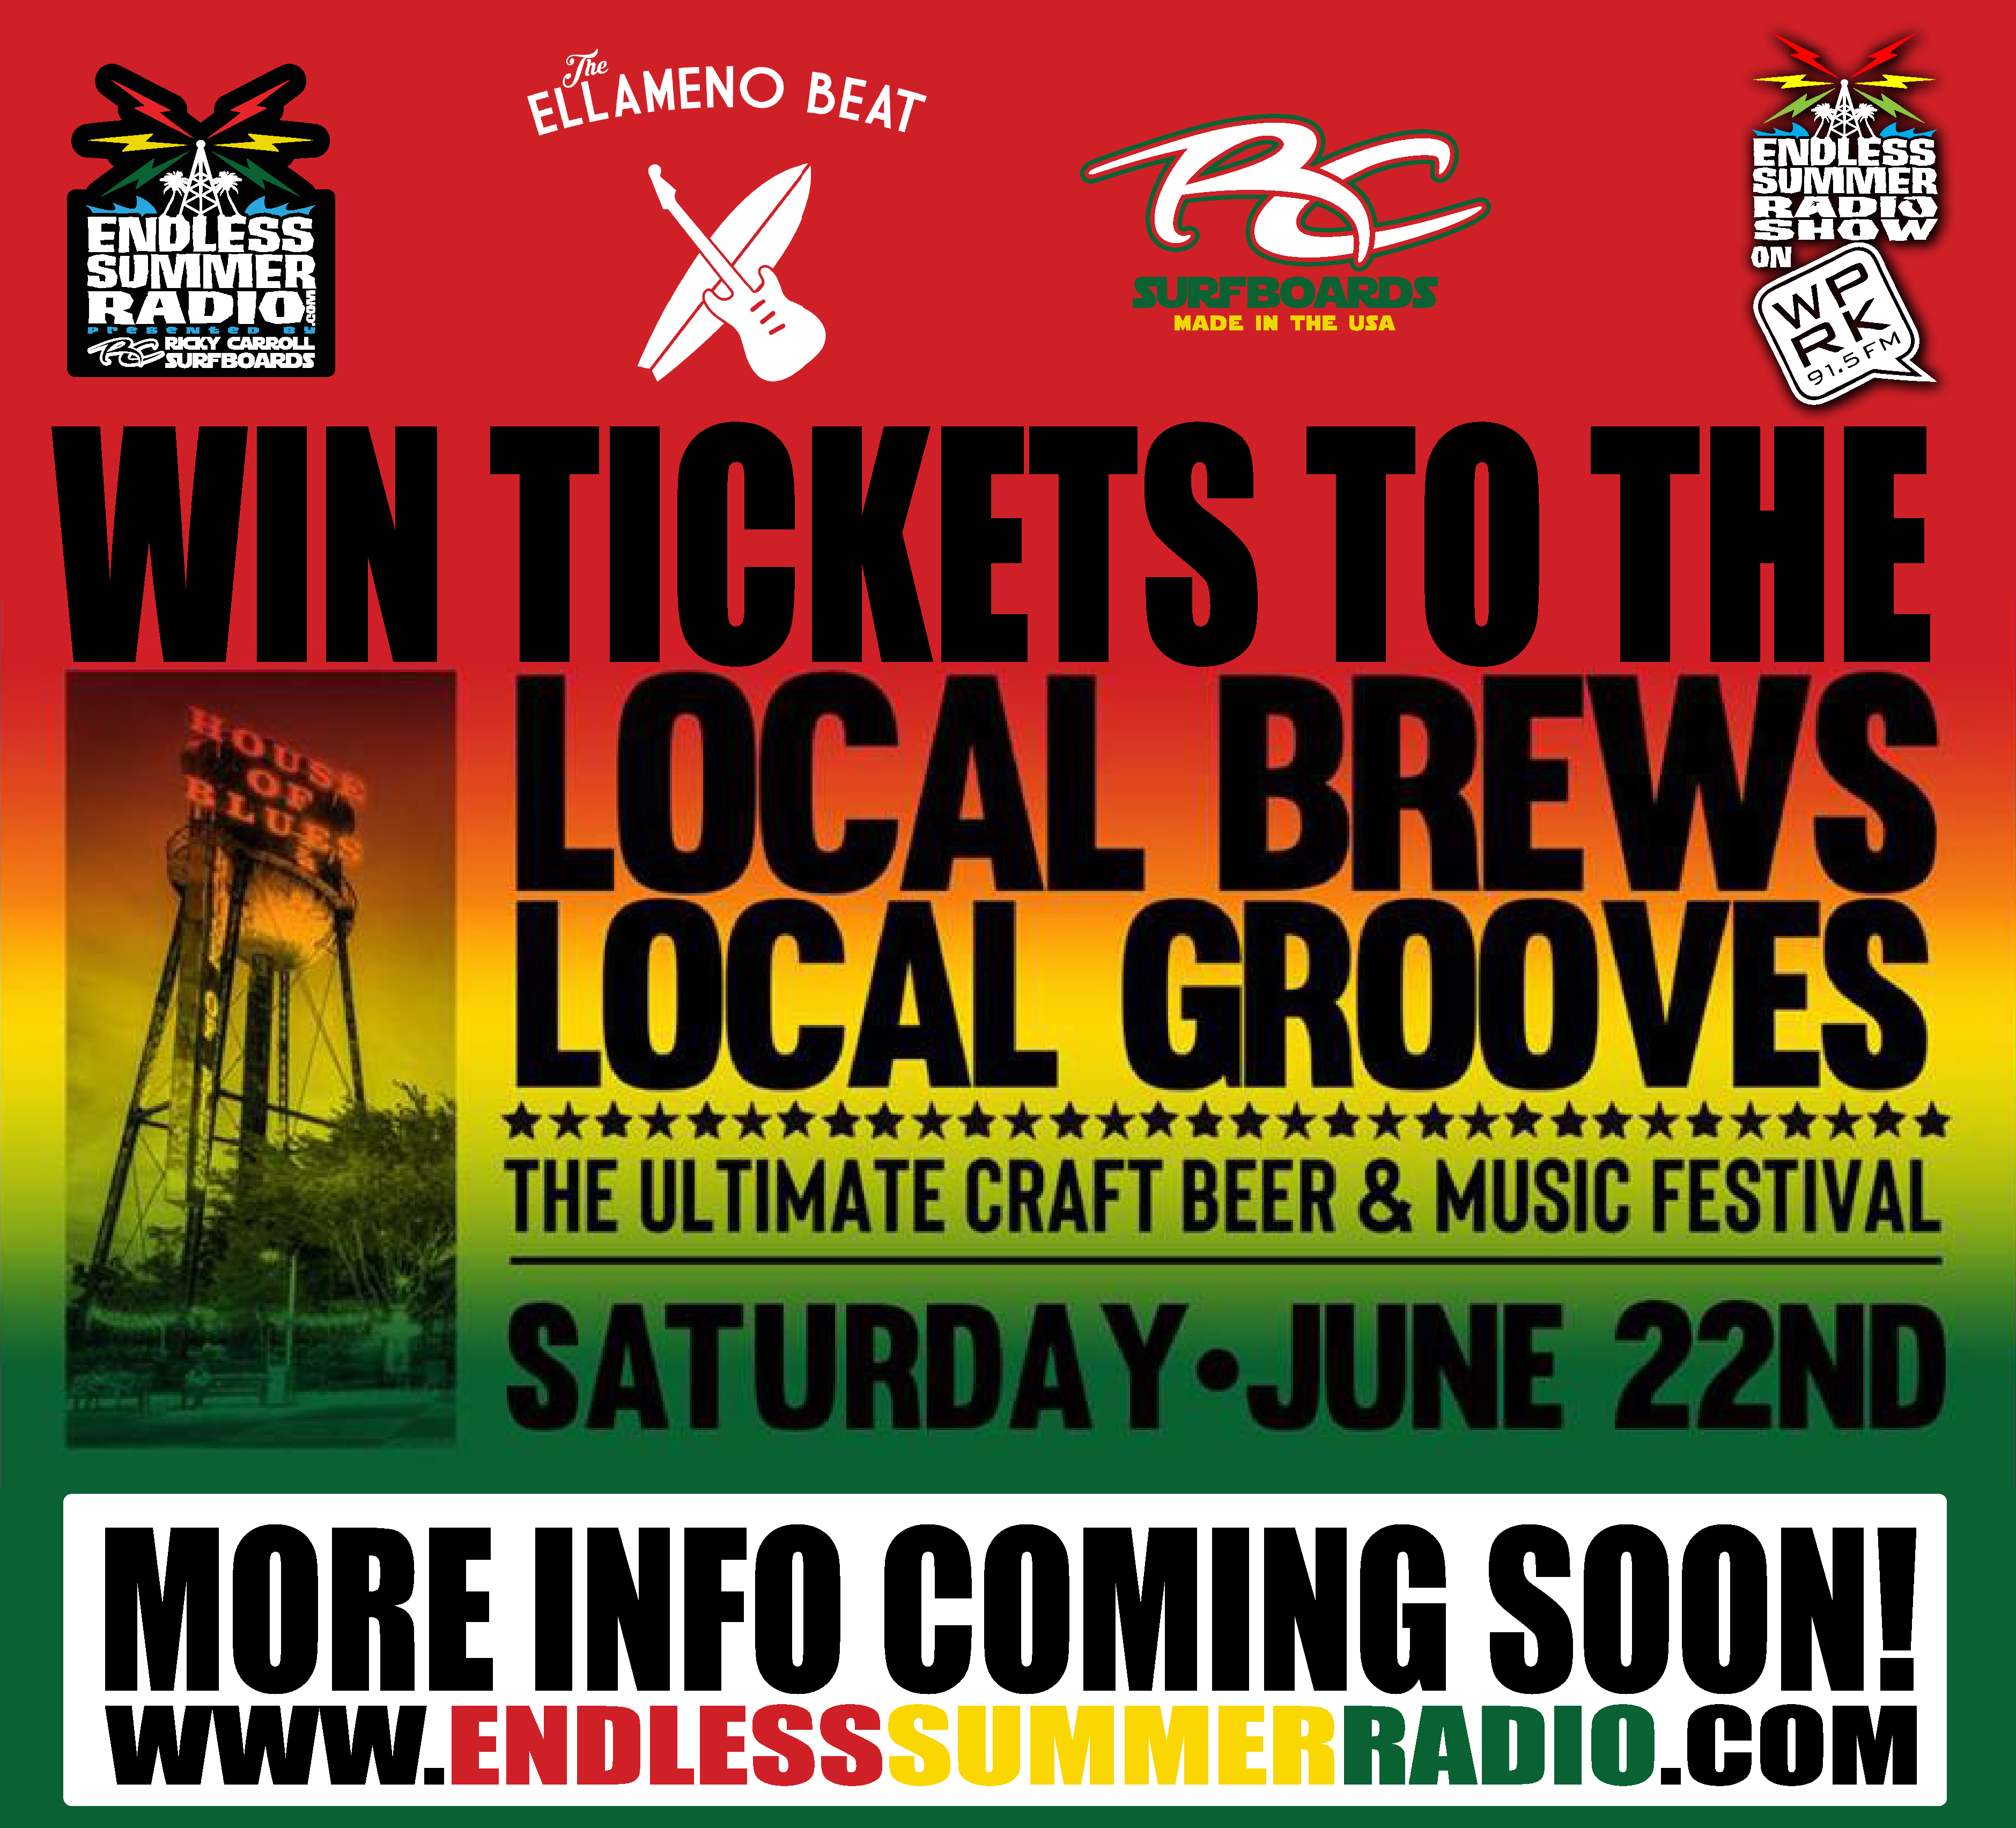 WIN TICKETS to the Local Brews Local Grooves: The Ultimate Craft Beer and Music Event